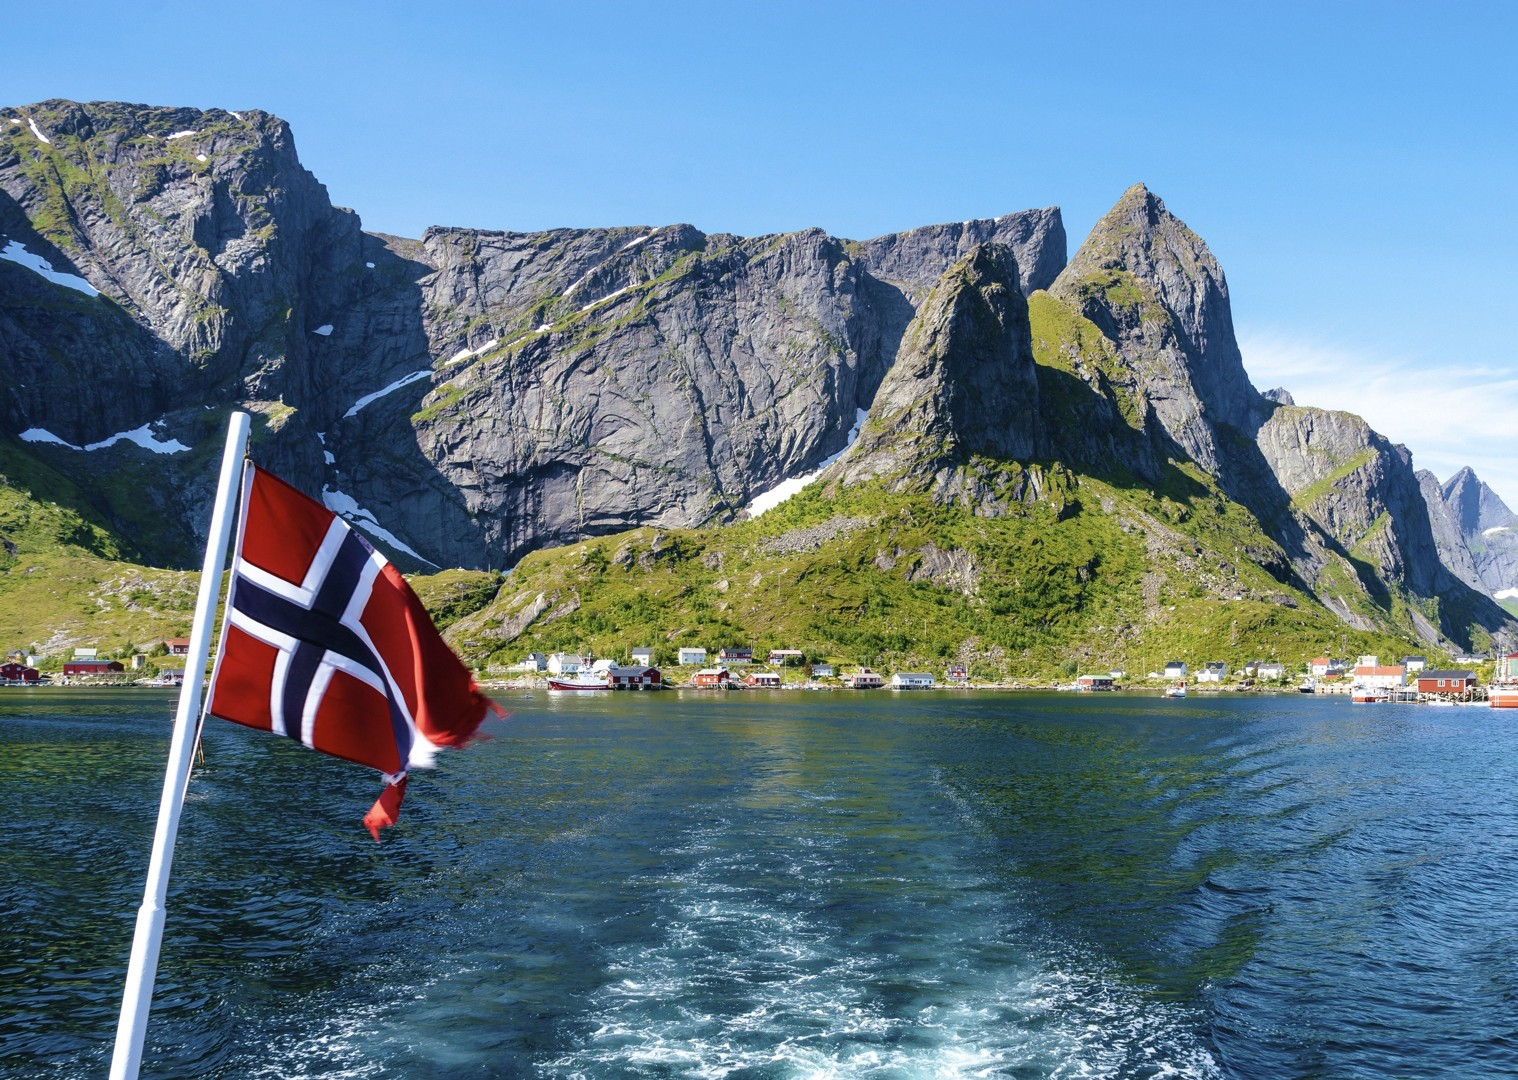 lofoten-islands-norway-2.jpg - Norway - Lofoten Islands - Biking with Vikings - Self-Guided Family Cycling Holiday - Family Cycling